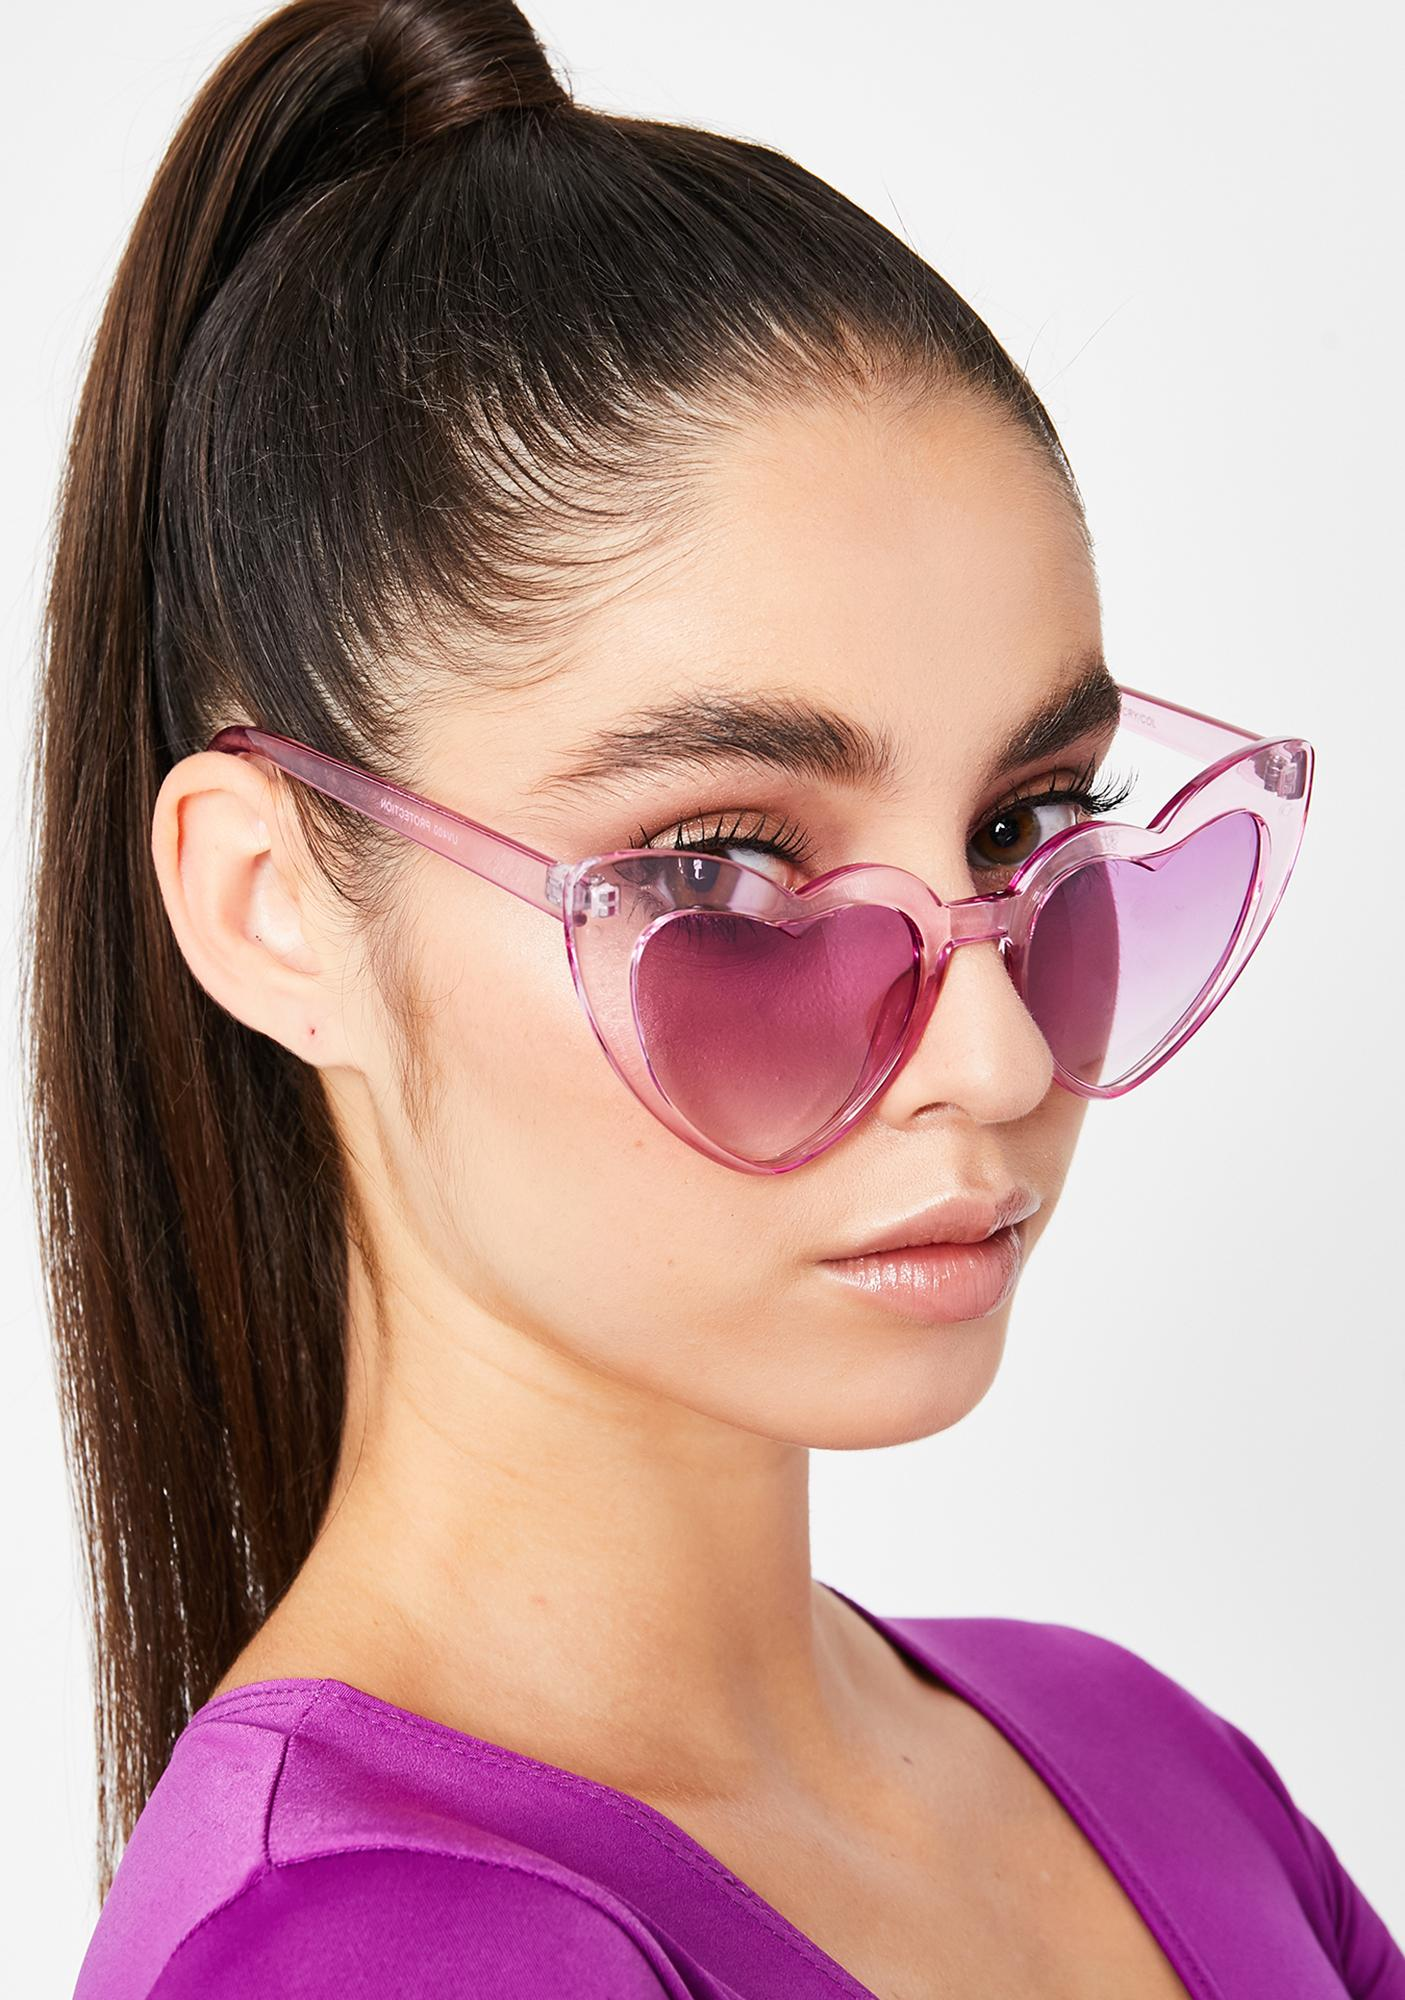 Grape Un-break Ur Heart Sunglasses